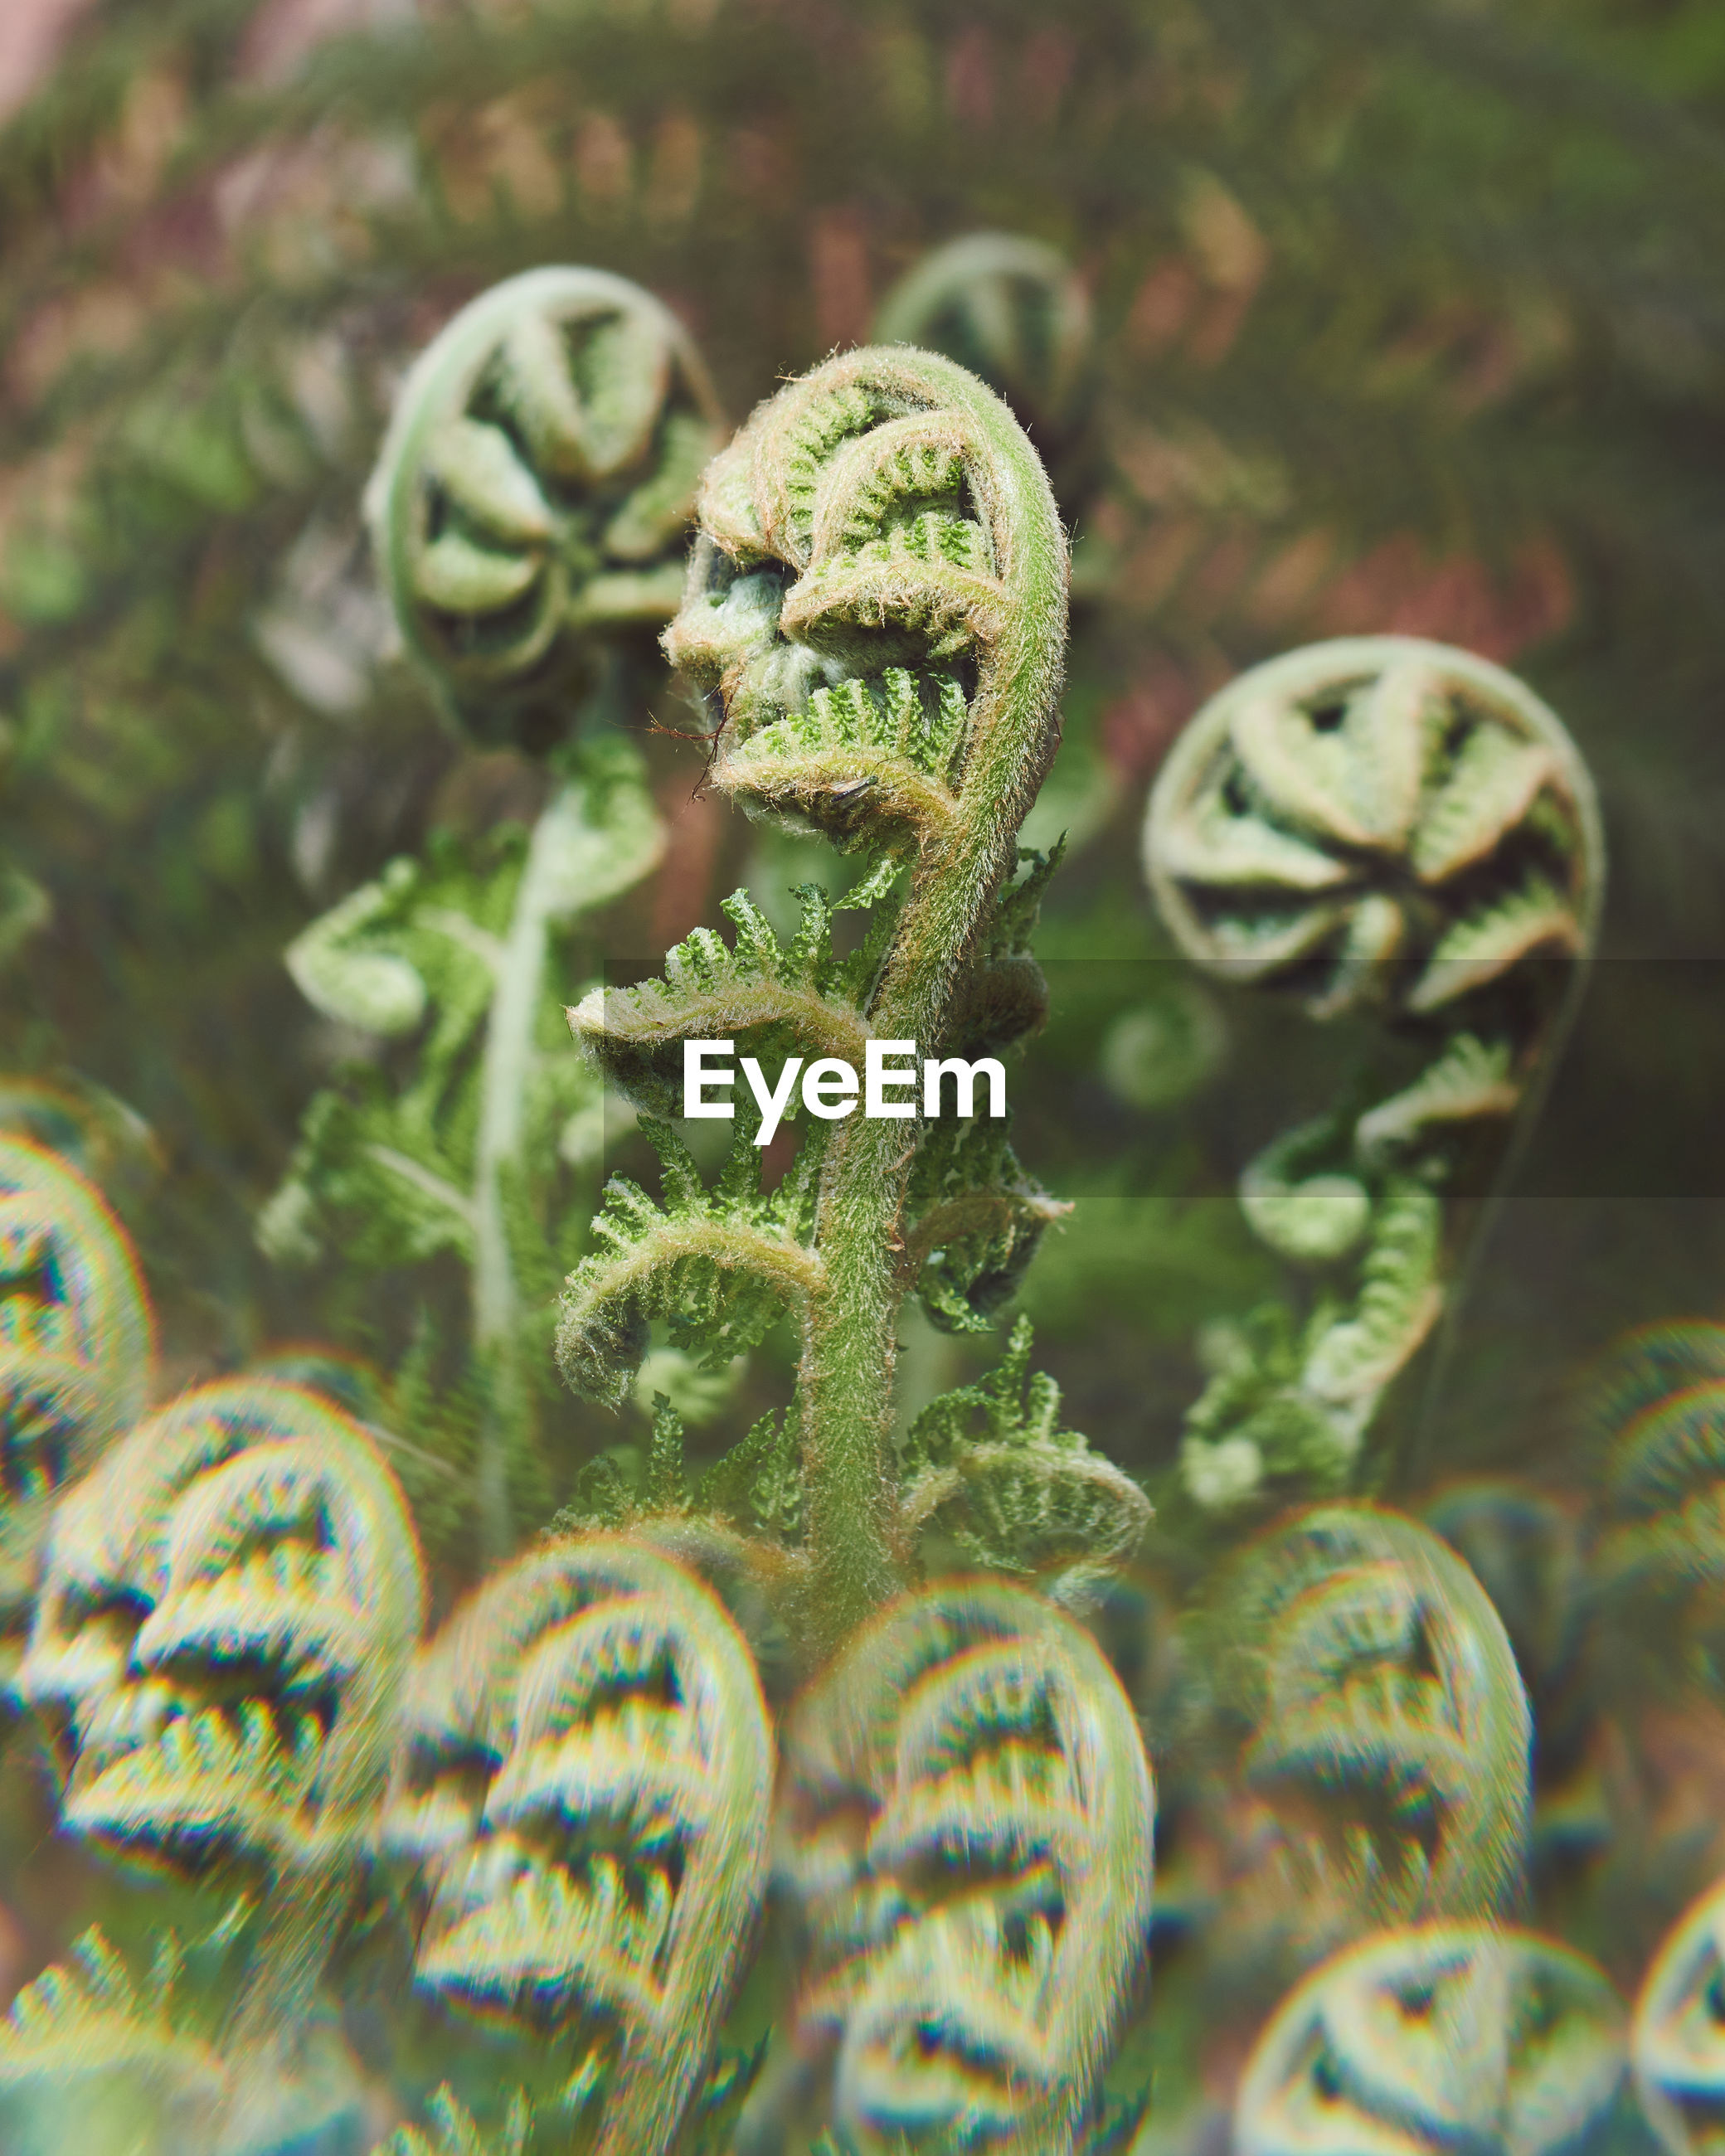 CLOSE-UP OF FERN ON METAL